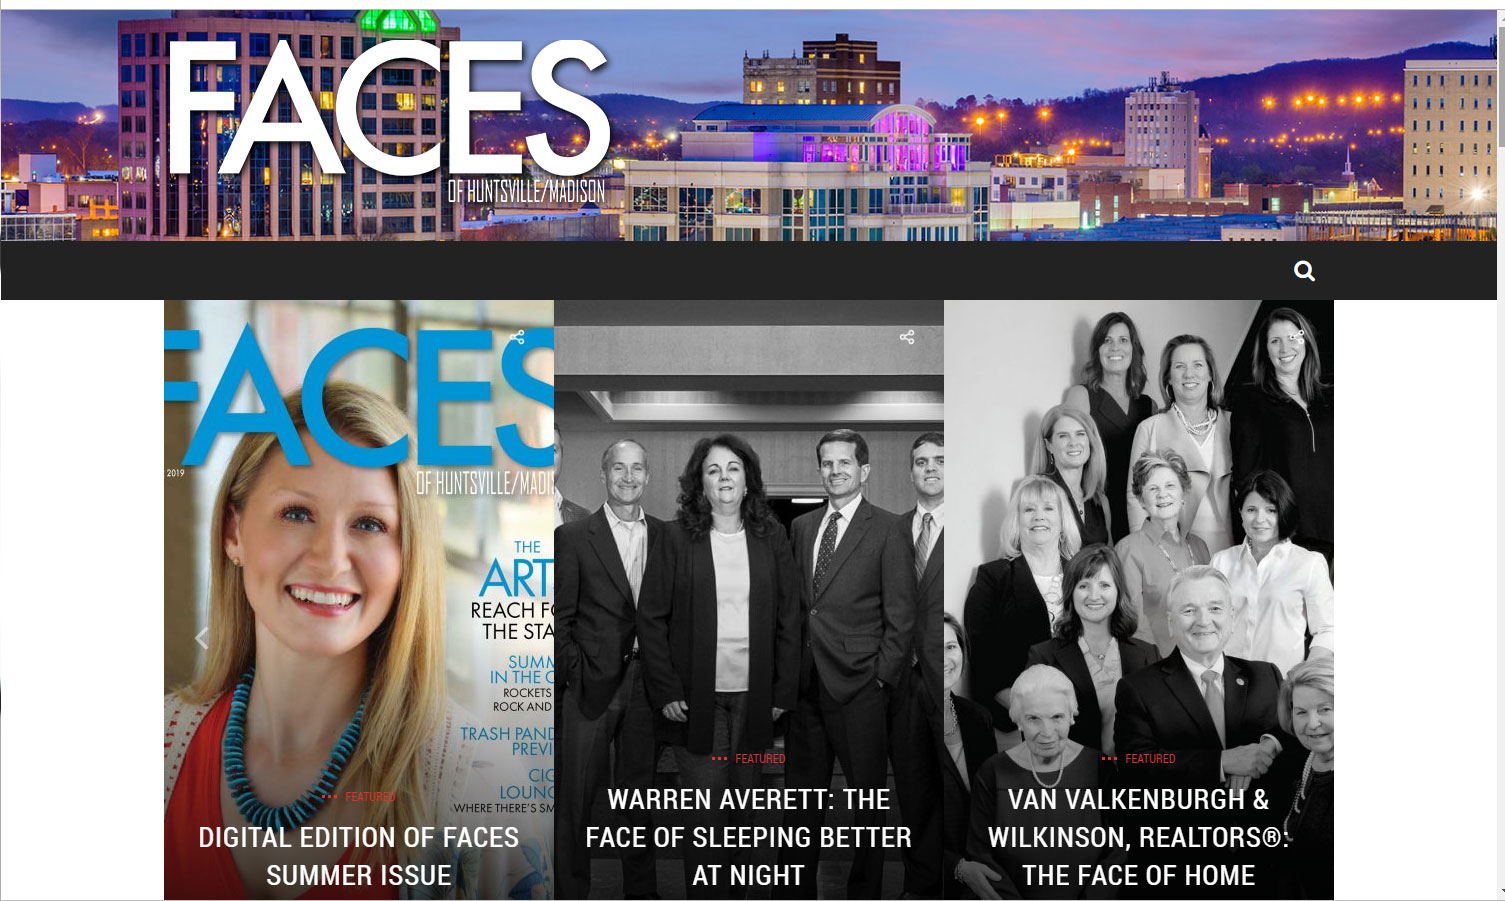 Homepage of Faces of Huntsville/Madison